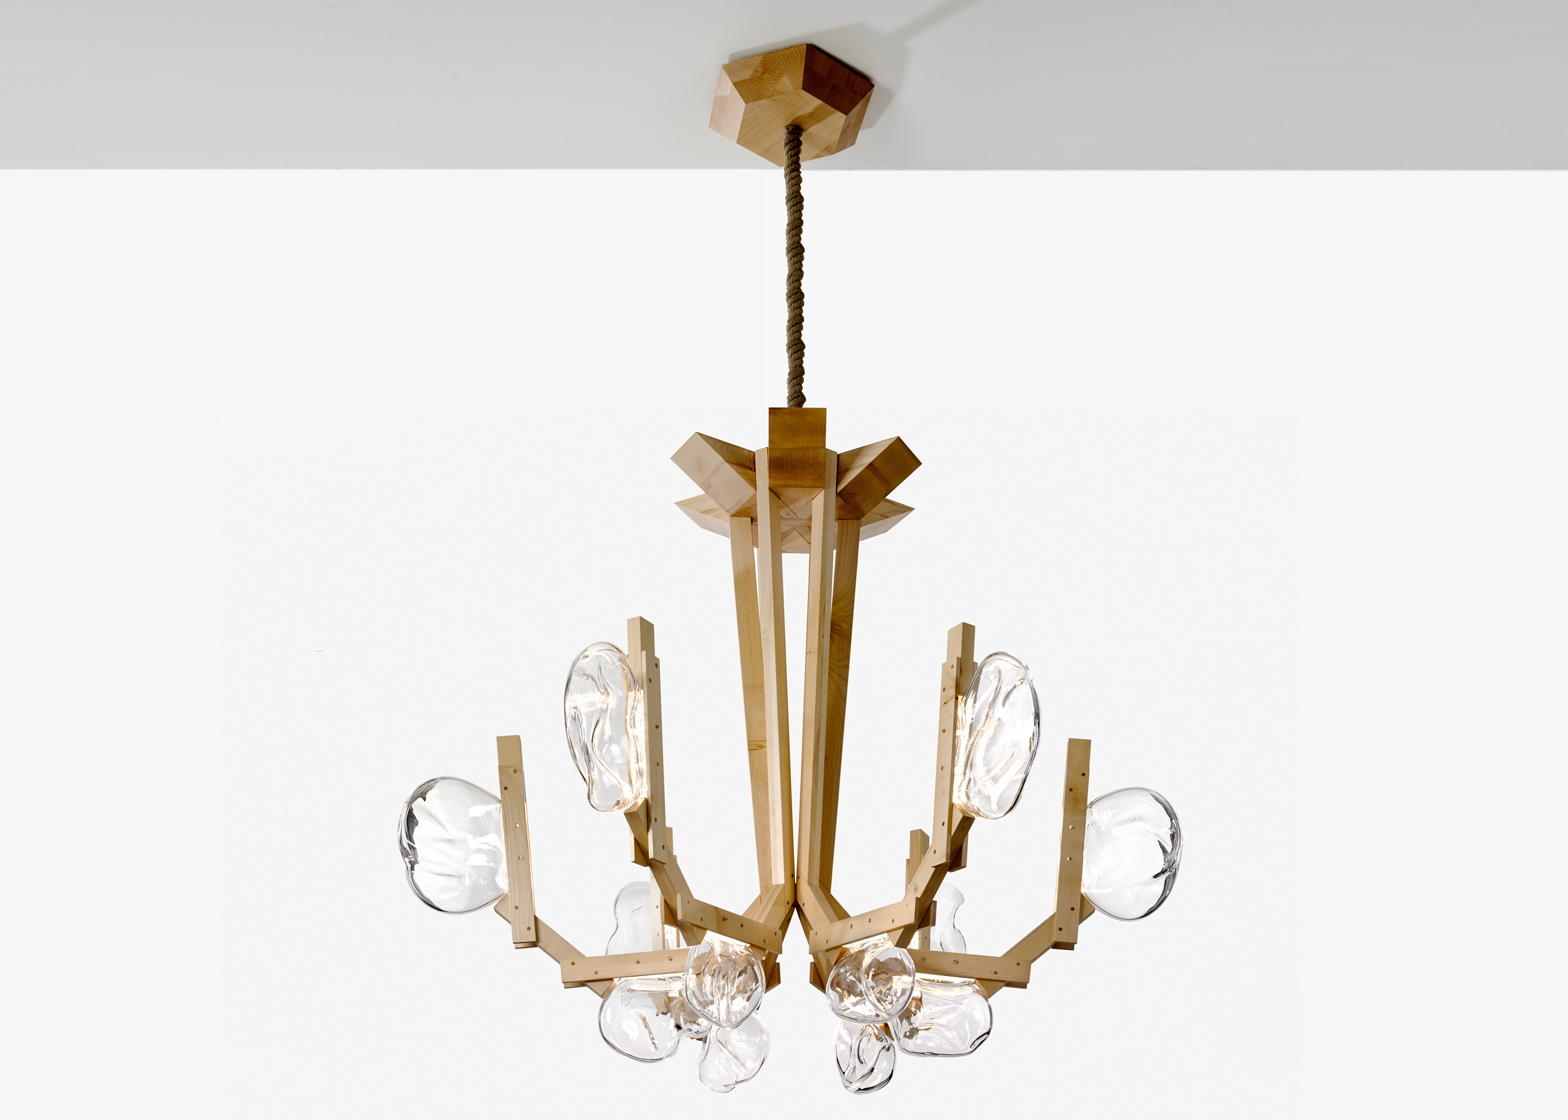 Picture Of fungo chandelier inspired by mushrooms growing on wood  1